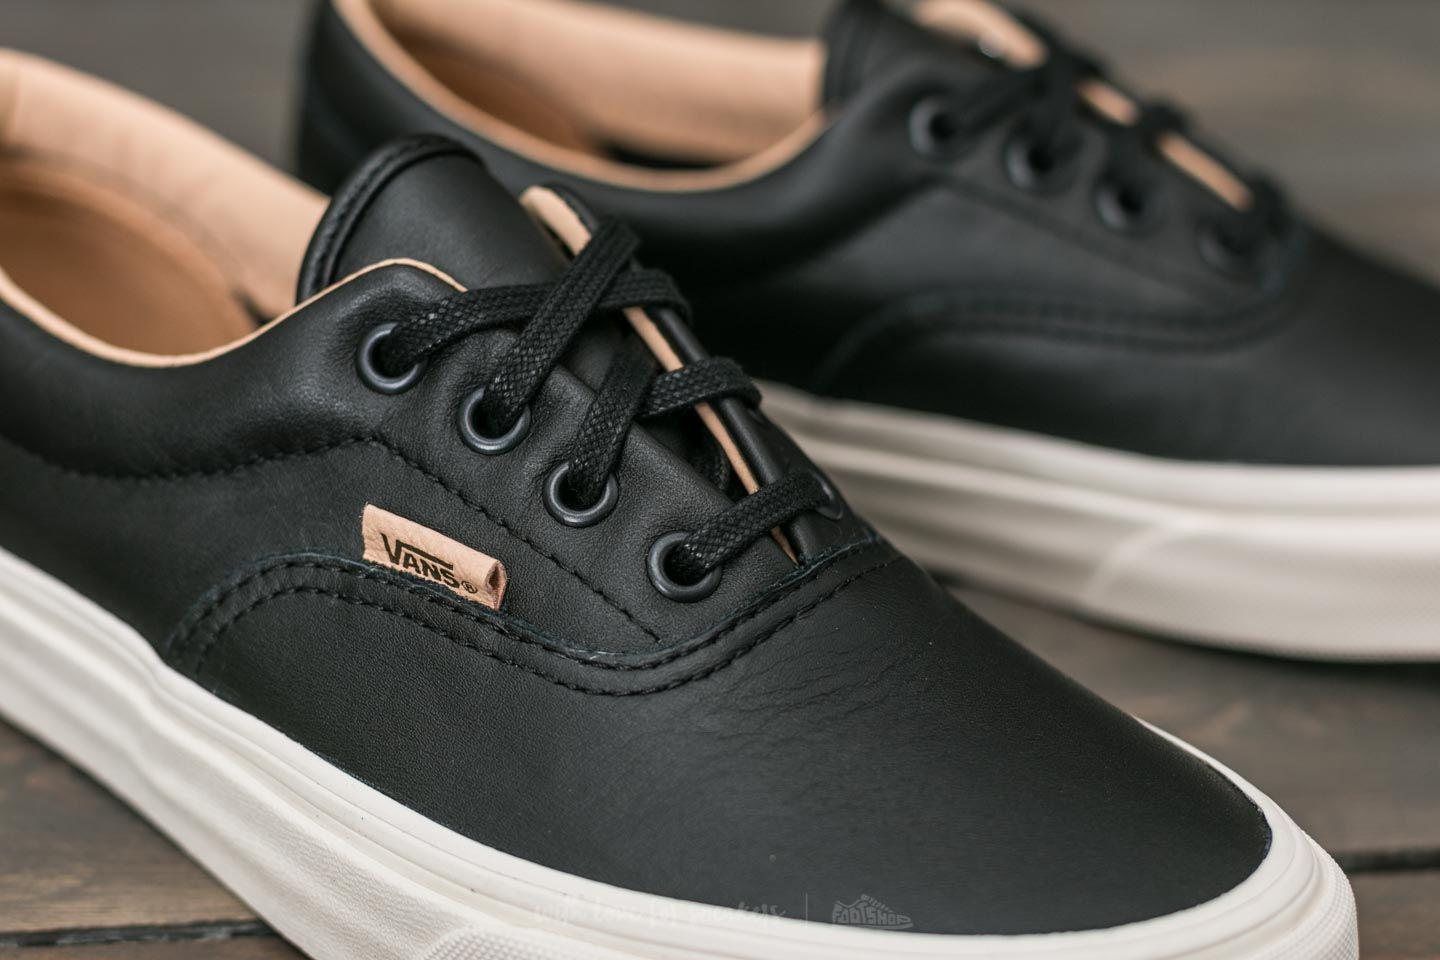 vans era leather